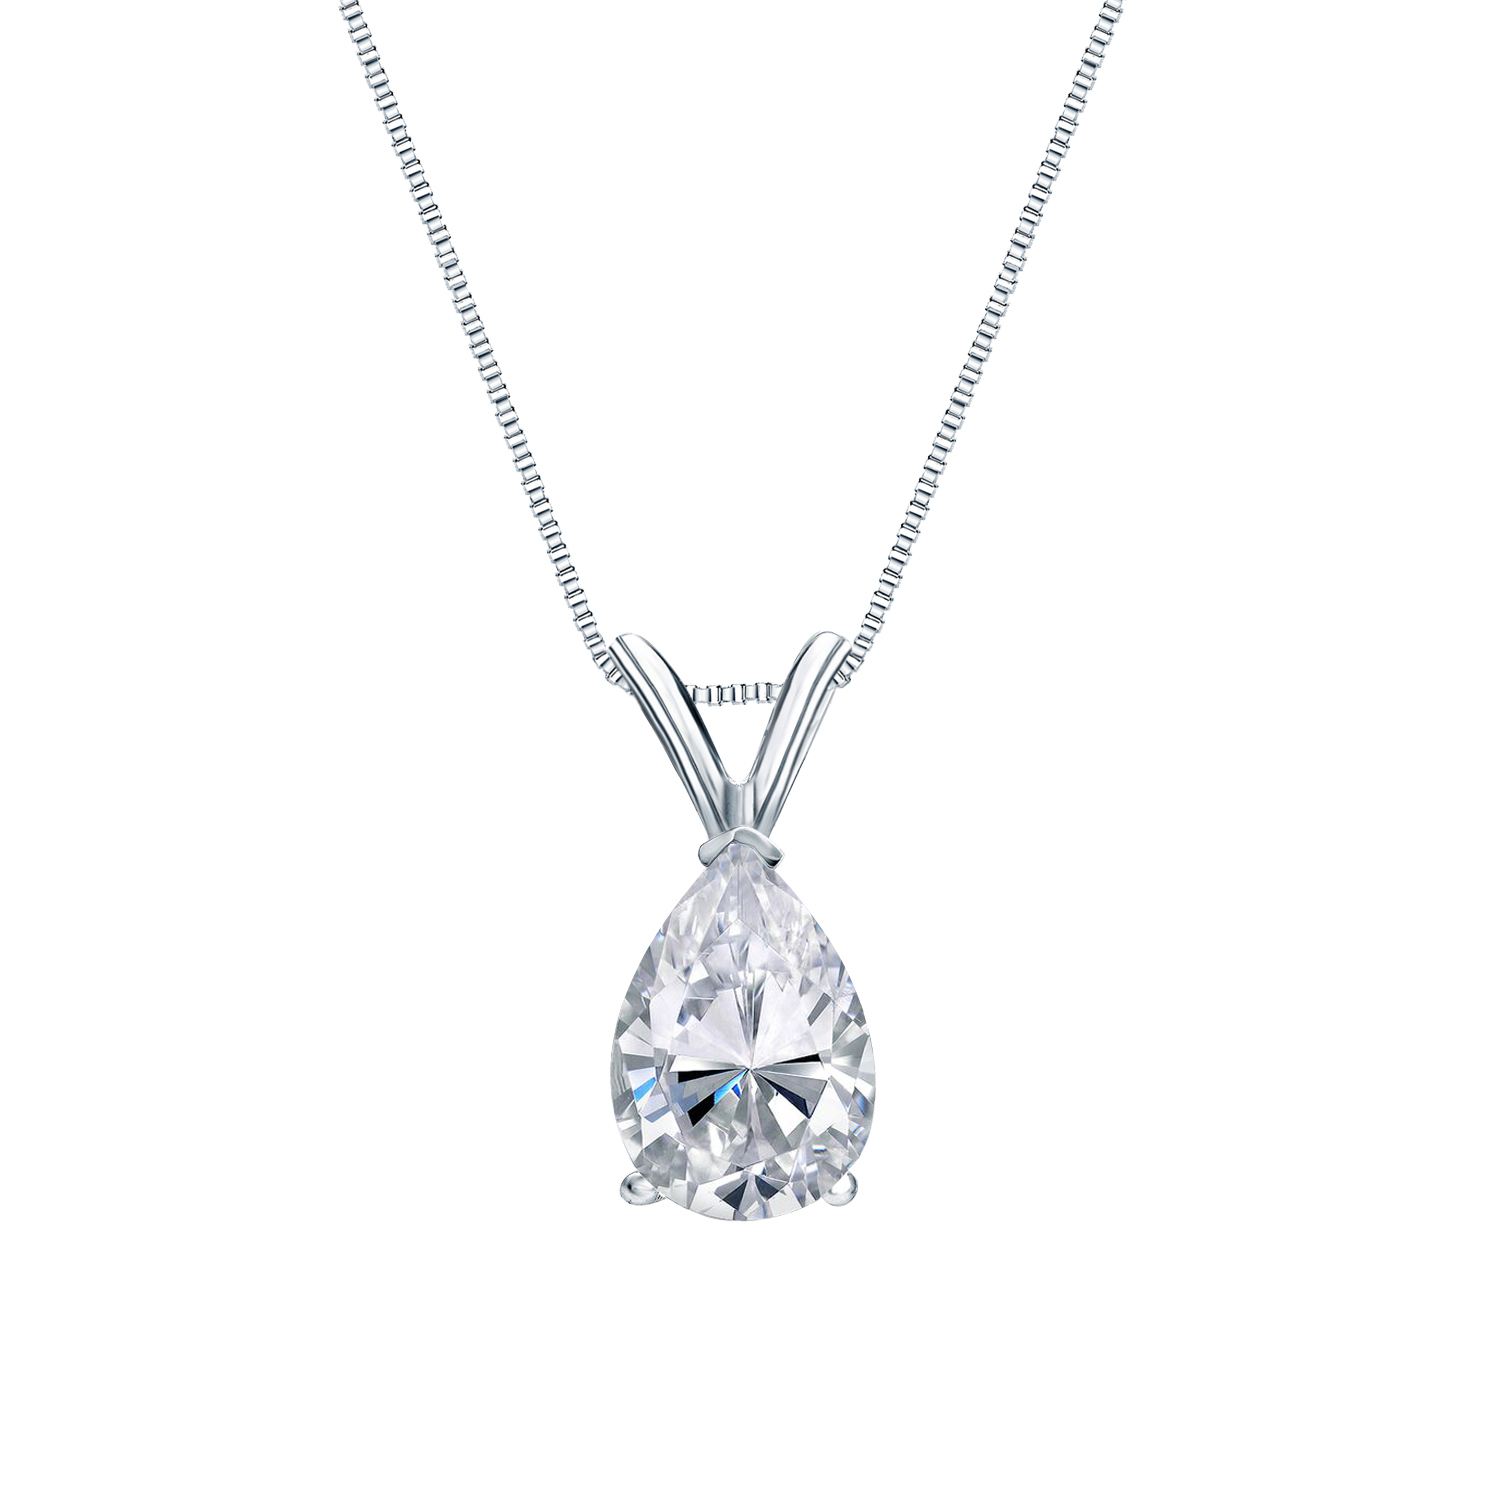 Certified 0.25 ct. tw. Pear Diamond Solitaire Pendant 14k White Gold V-End Prong (I-J, I1)